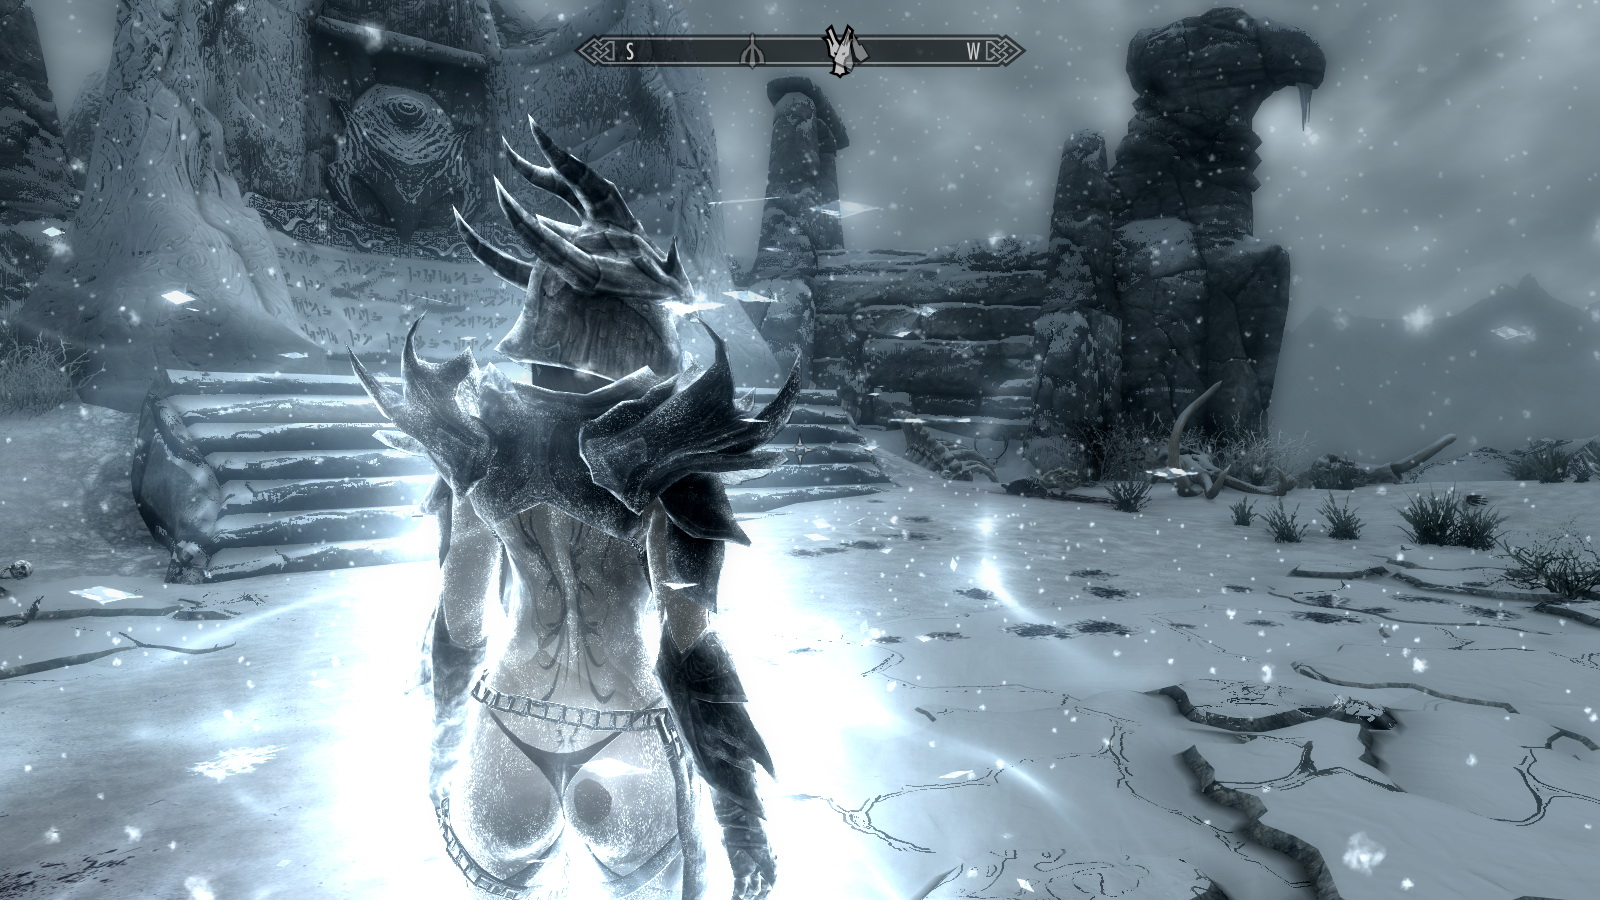 ScreenShot68.jpg - Elder Scrolls 5: Skyrim, the game girls